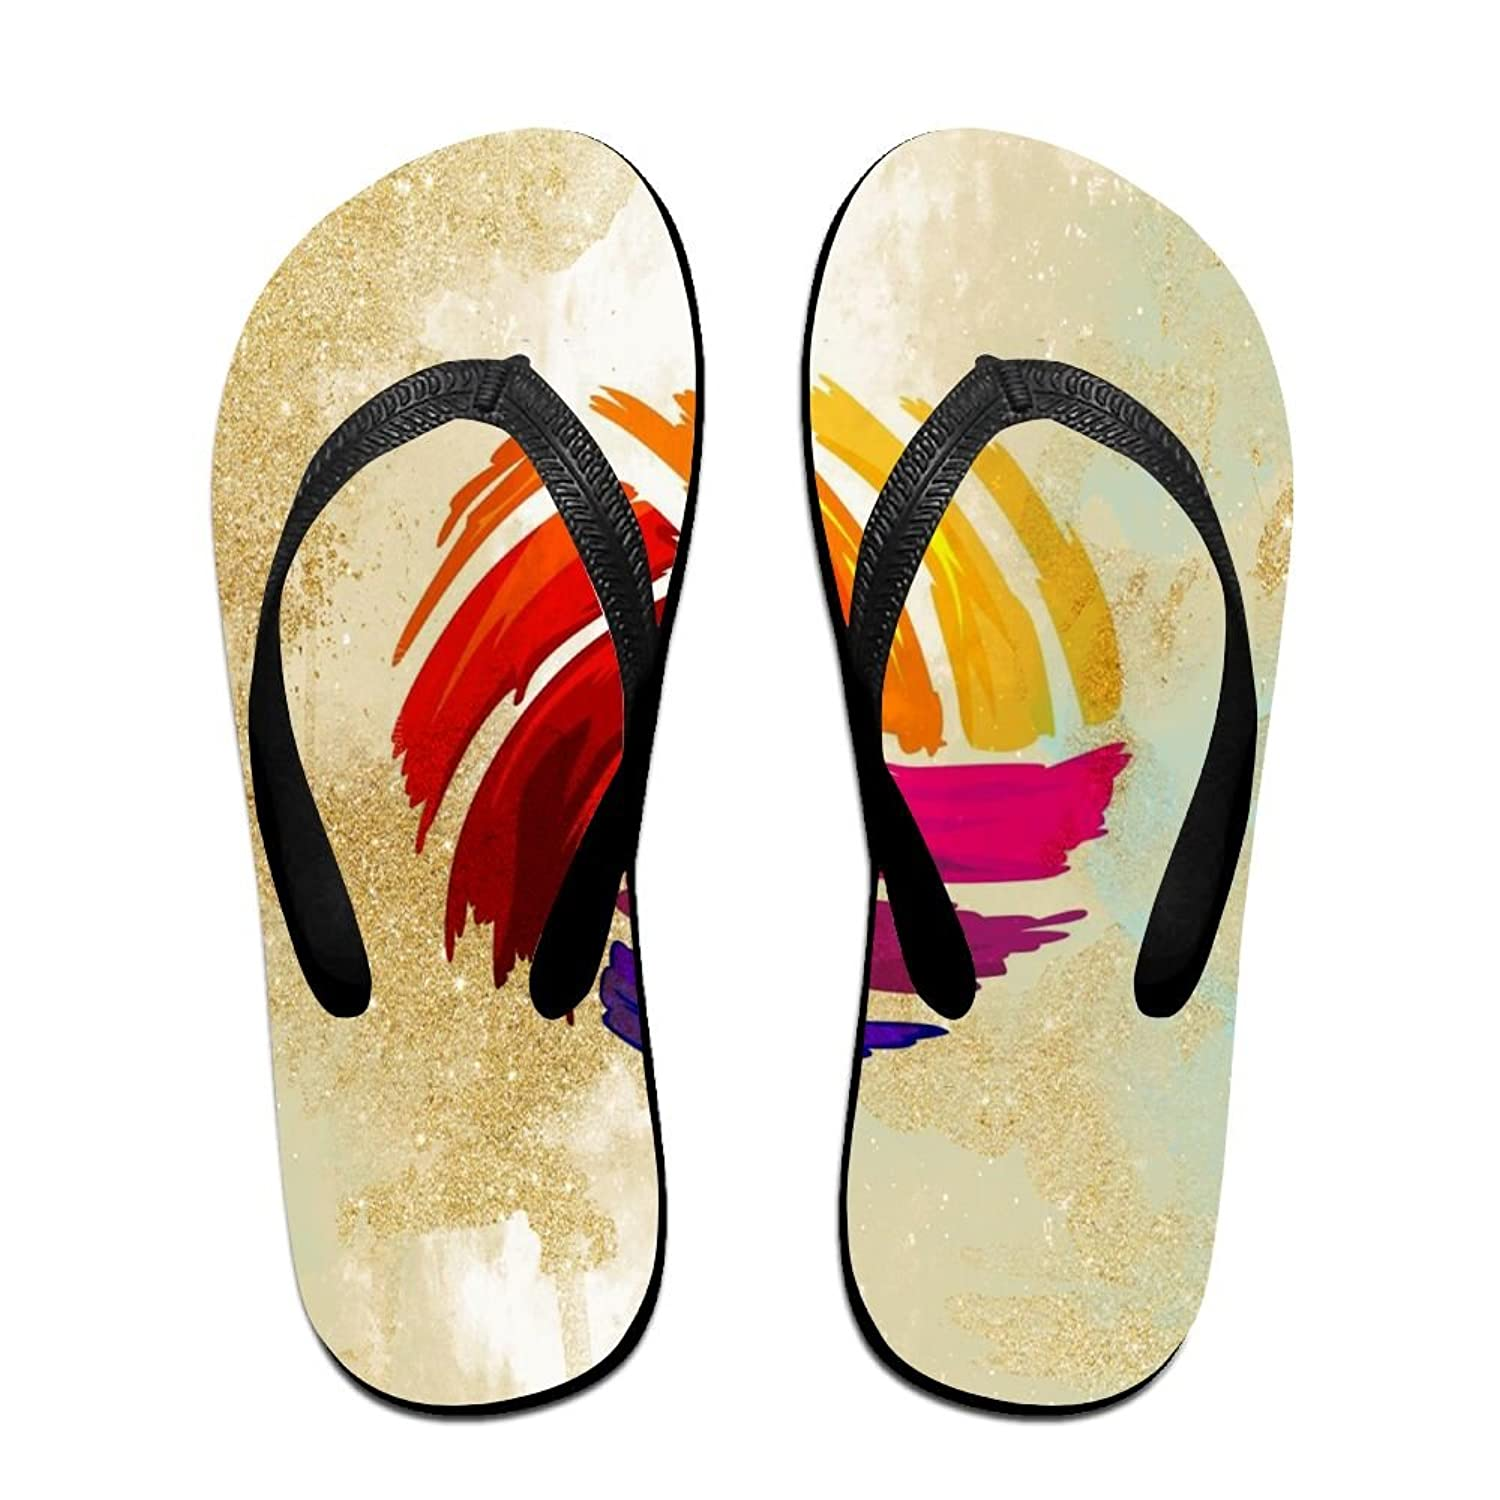 HXXUAN Unisex Non-slip Flip Flops Colorful Volleyball Cool Beach Slippers Sandal